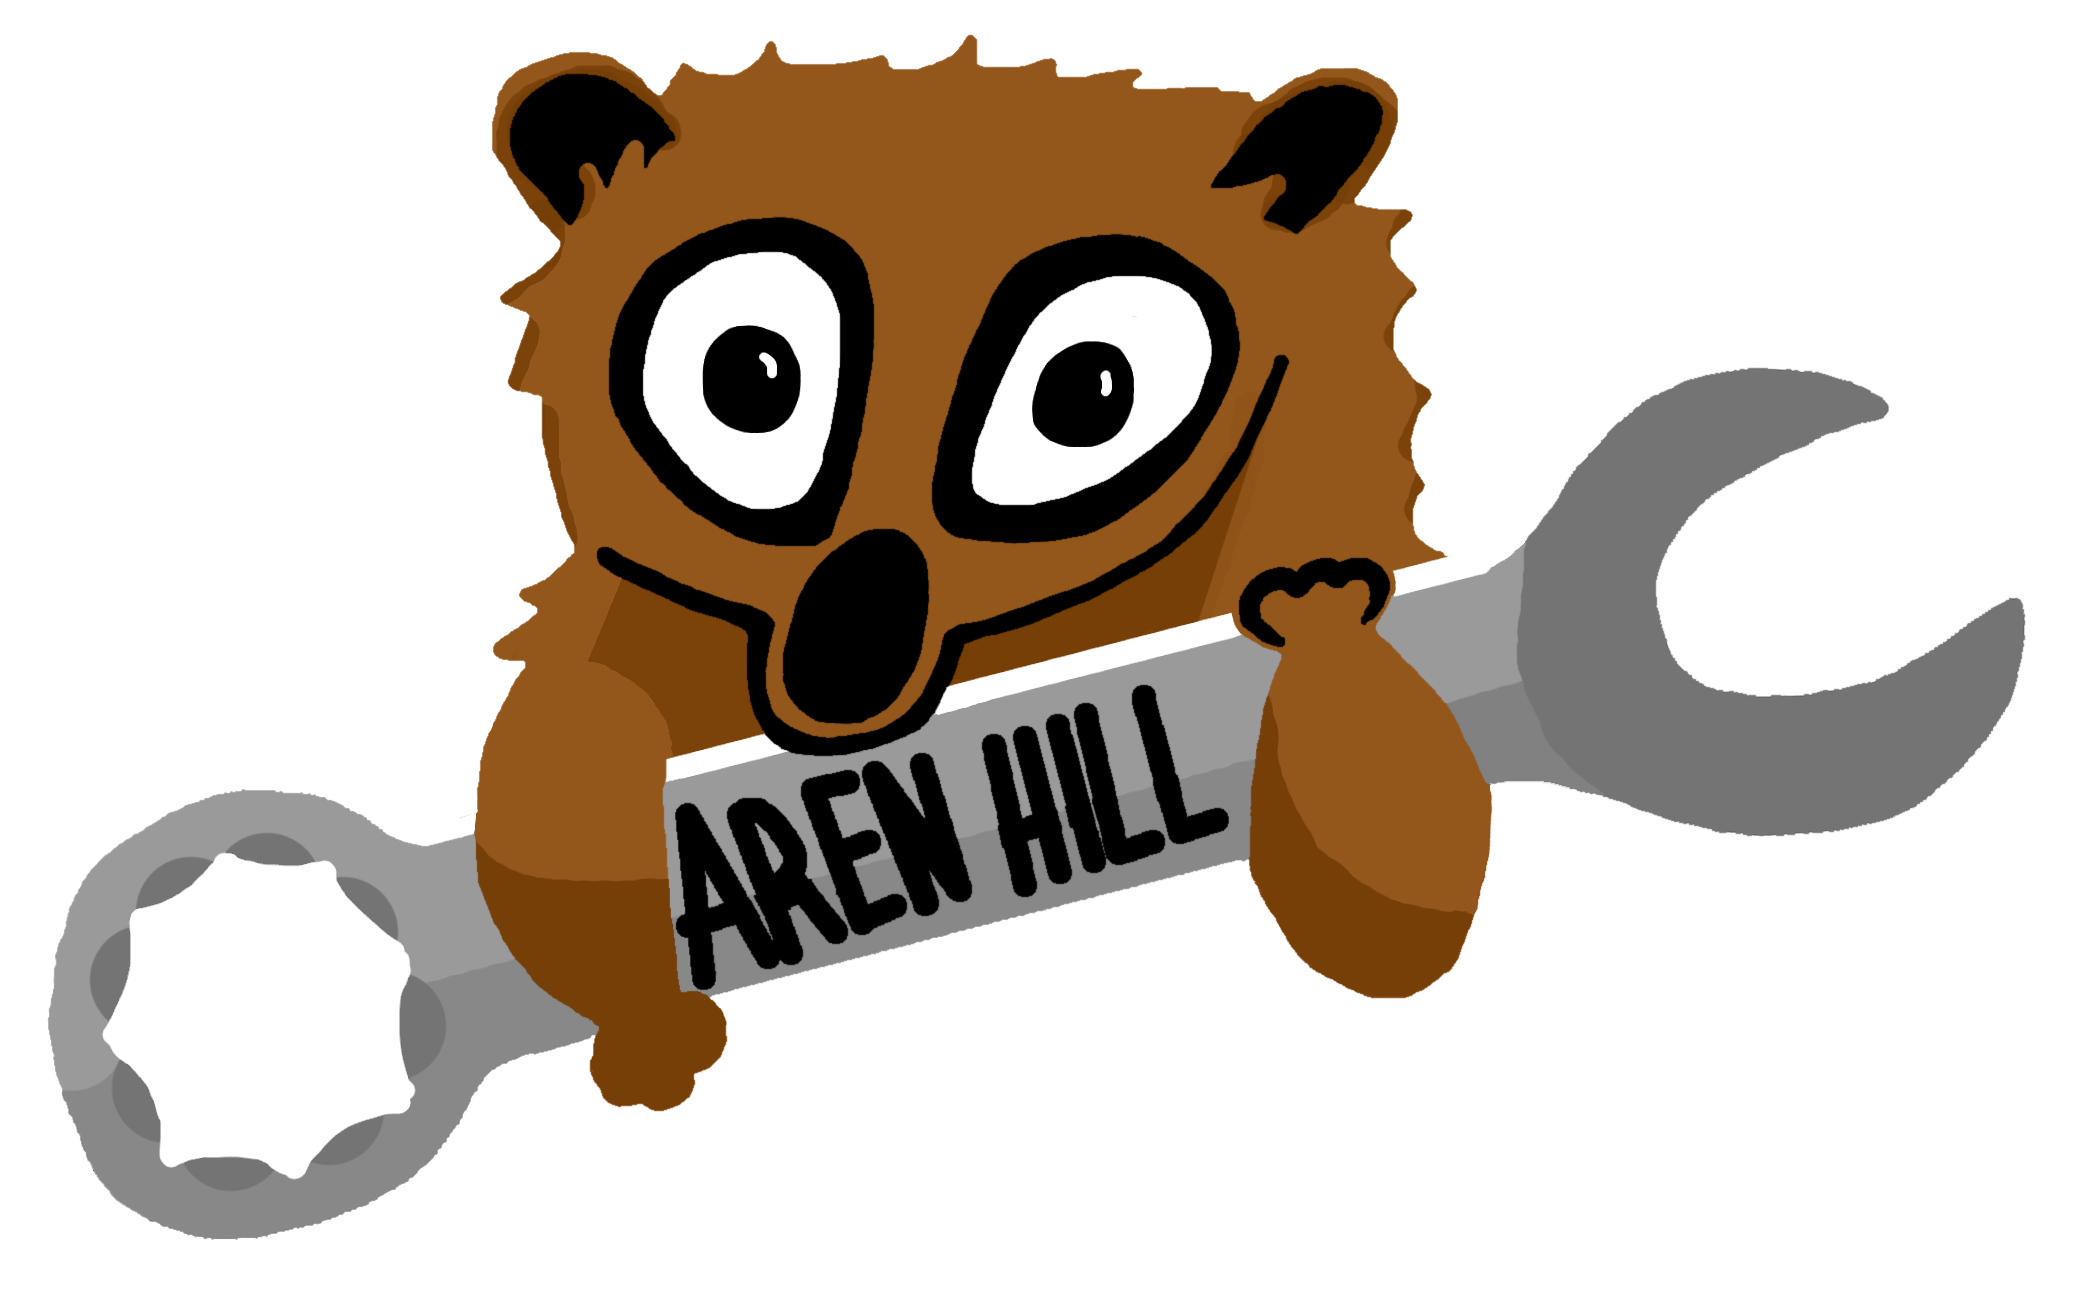 Aren Hill Logo